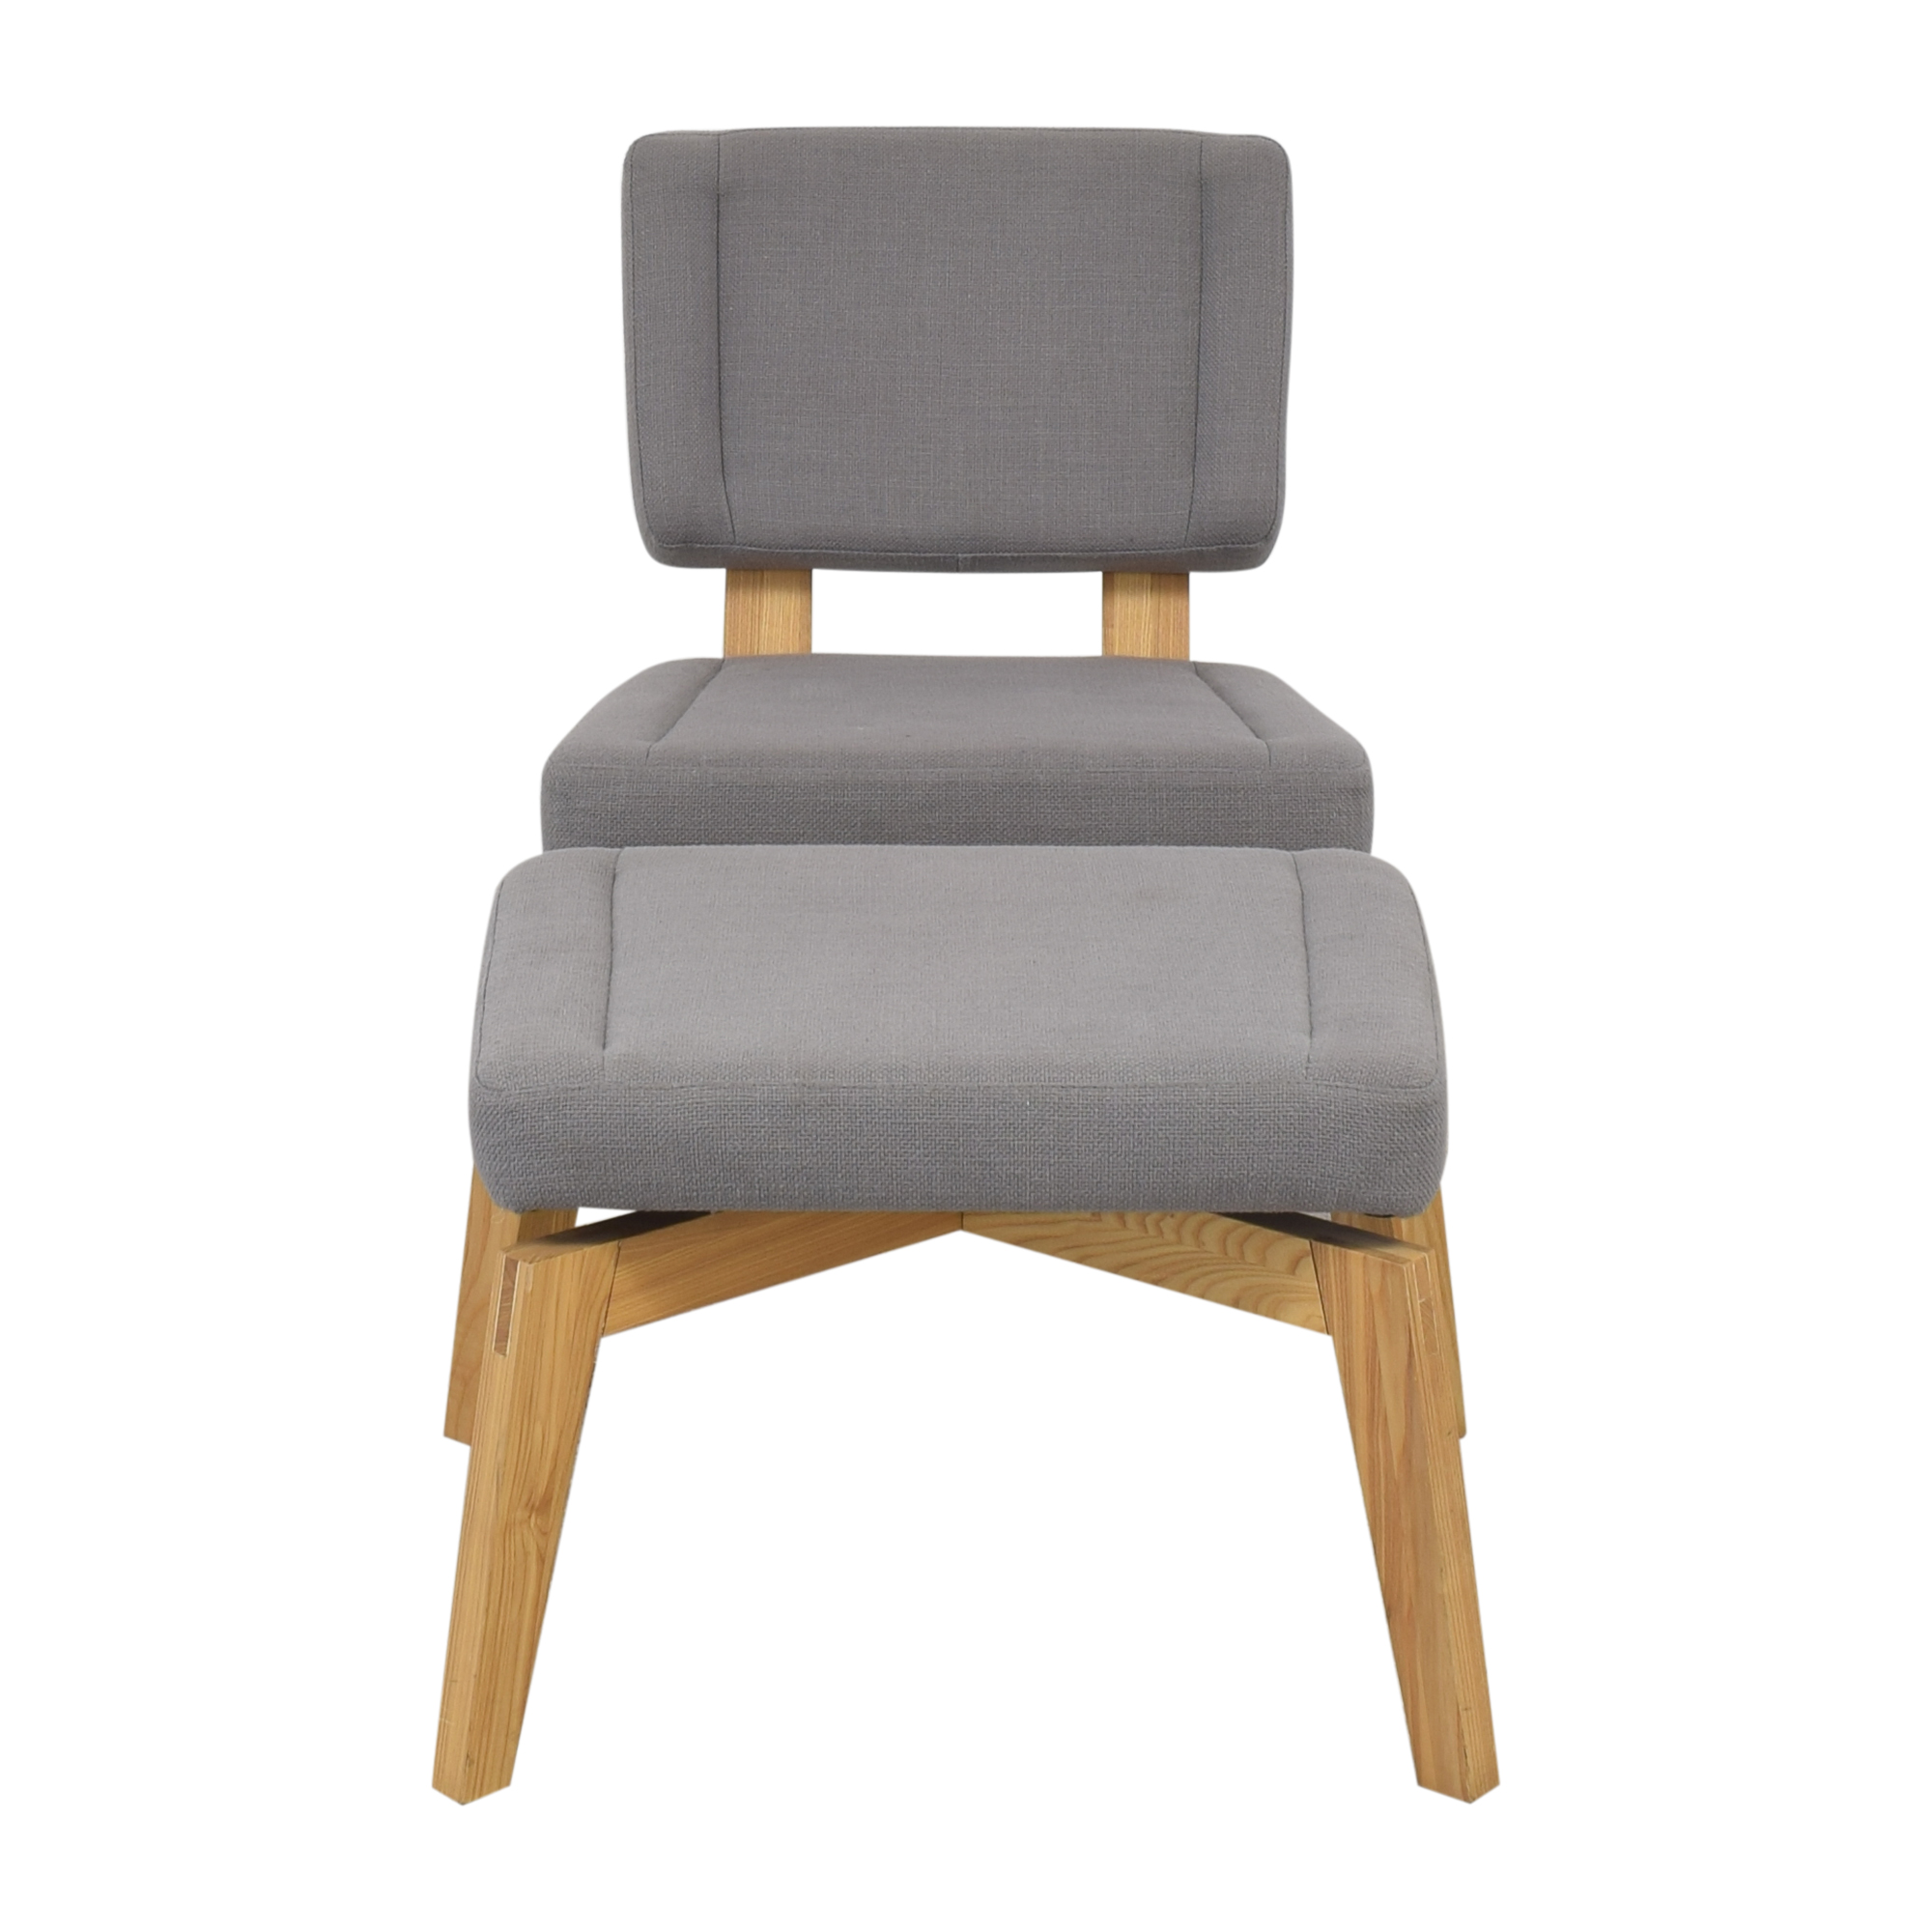 shop CB2 CB2 Lounge Chair with Ottoman online